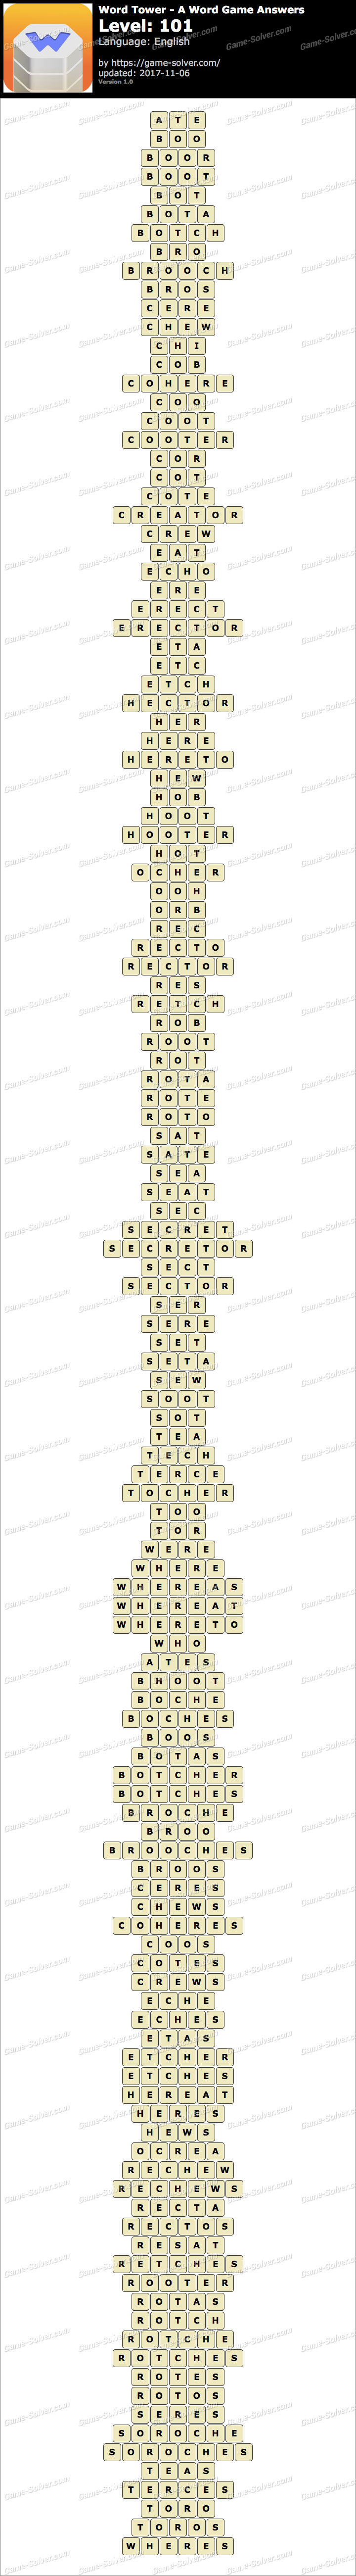 Word Tower Level 101 Answers